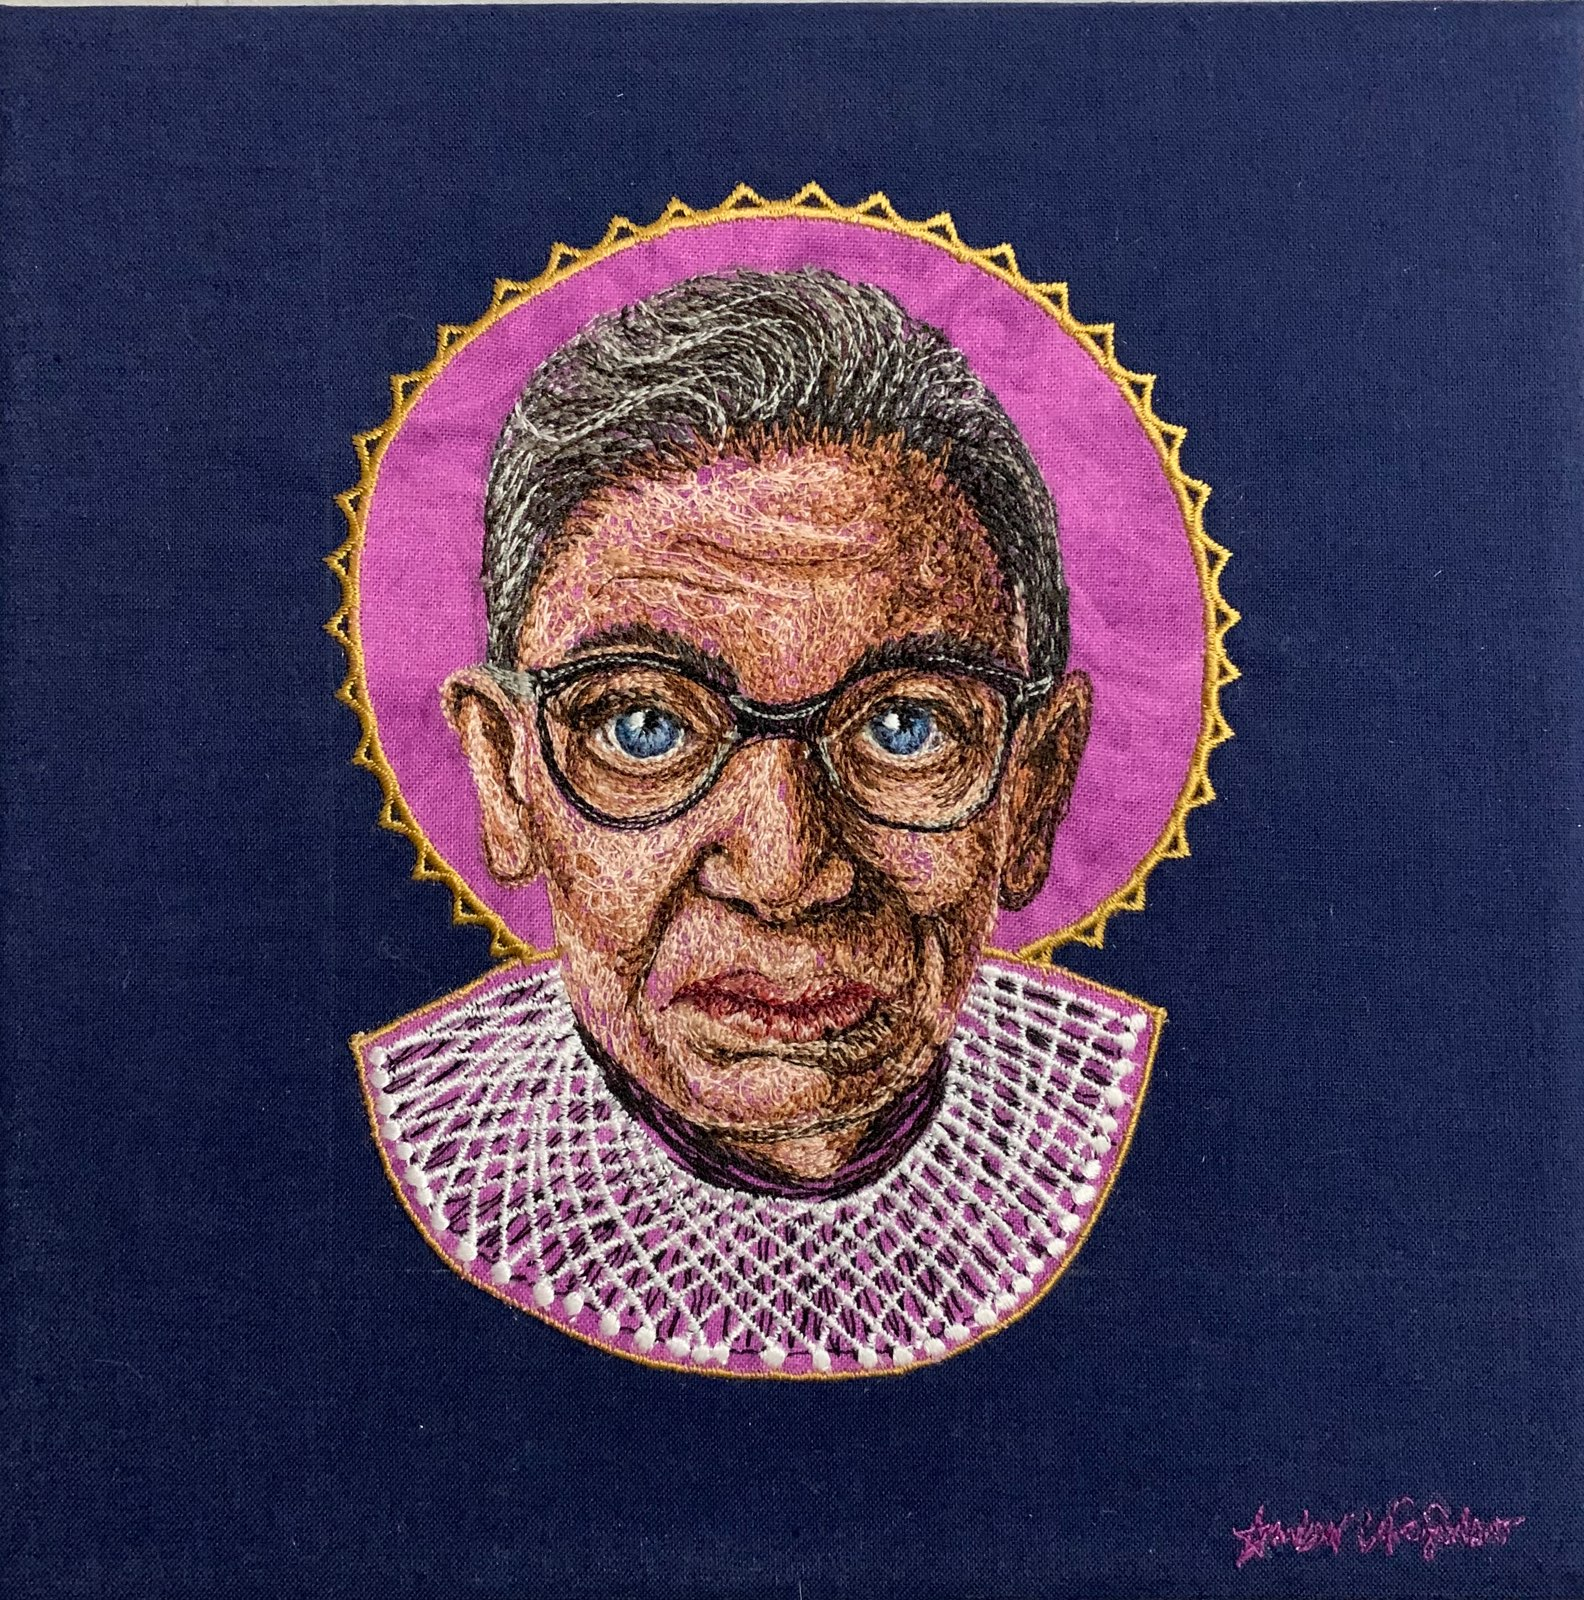 RBG, 8x8 inches, thread and fabric